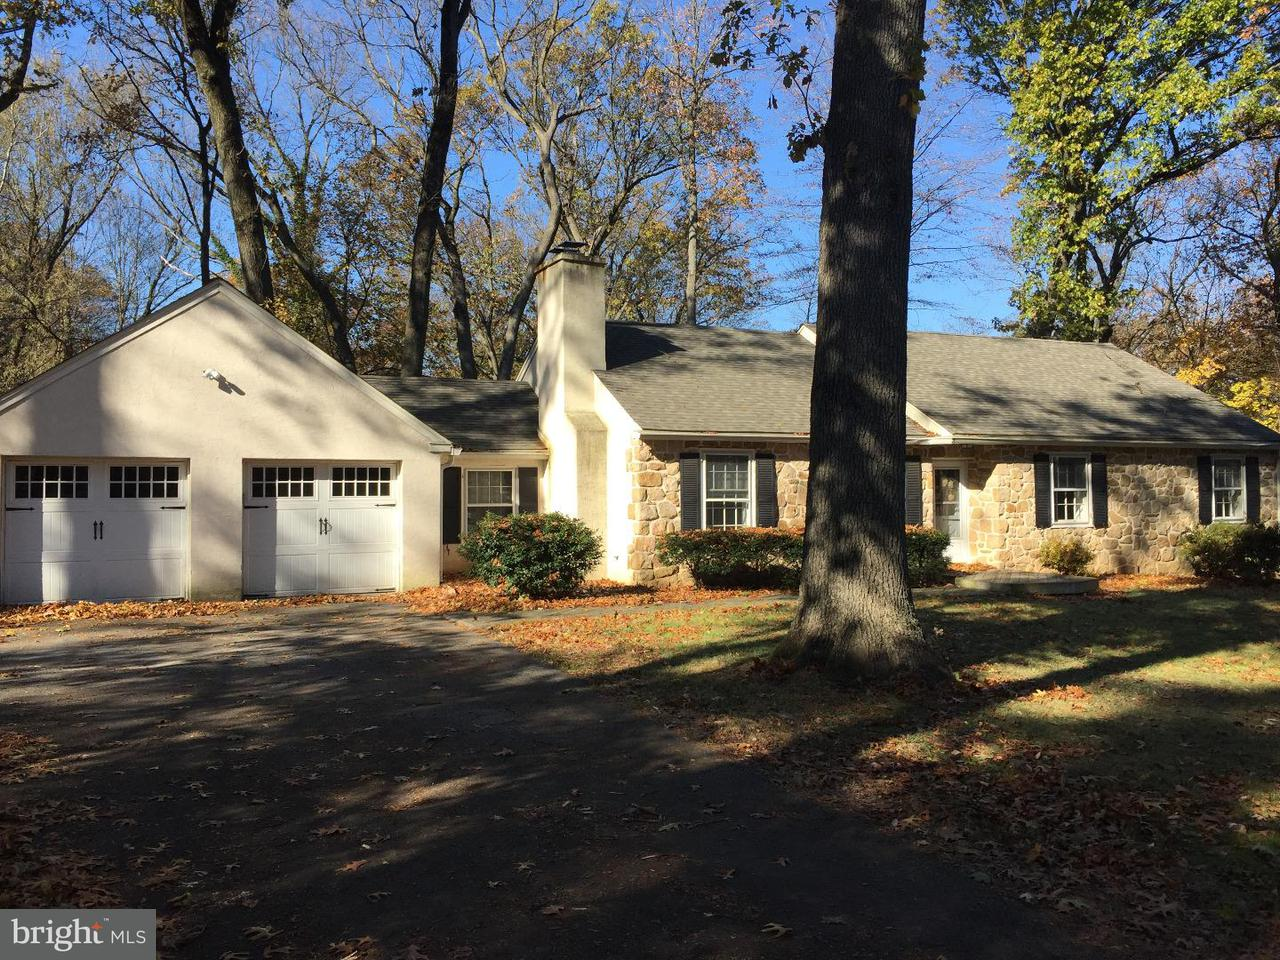 Single Family Home for Rent at 739 WEADLEY Road Radnor, Pennsylvania 19087 United States